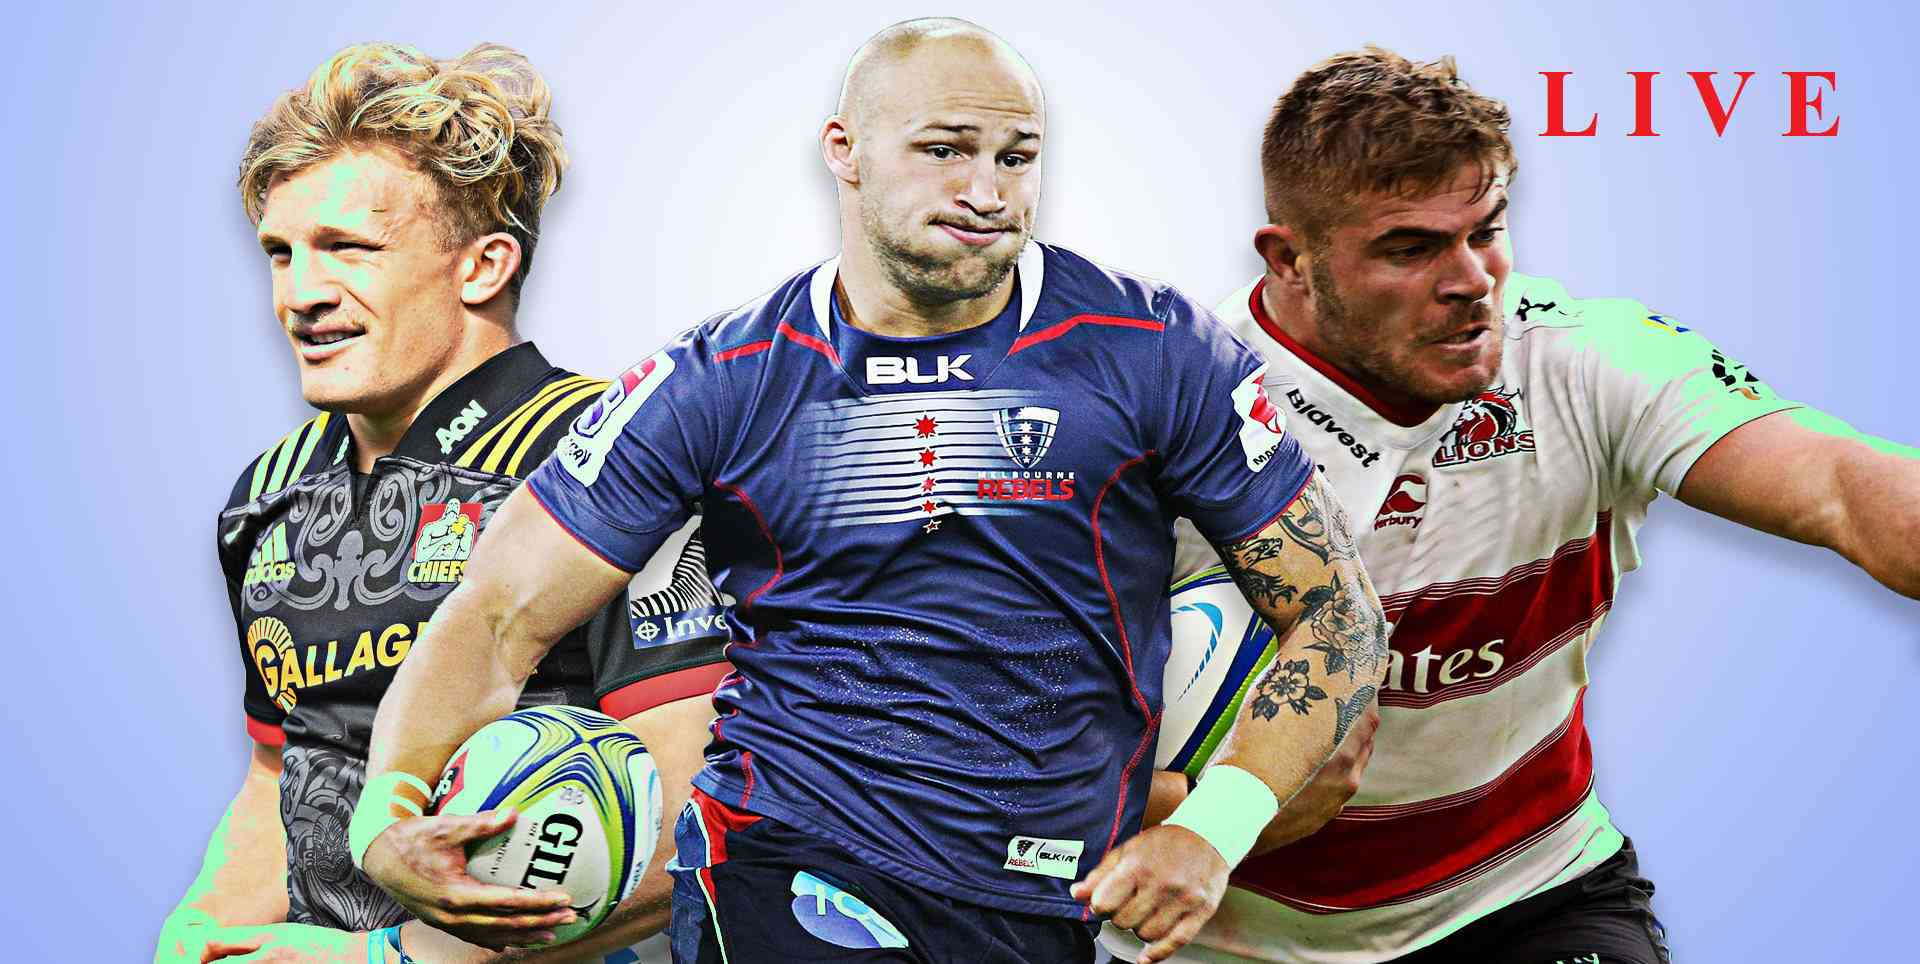 live-bath-rugby-vs-stade-francais-paris-stream